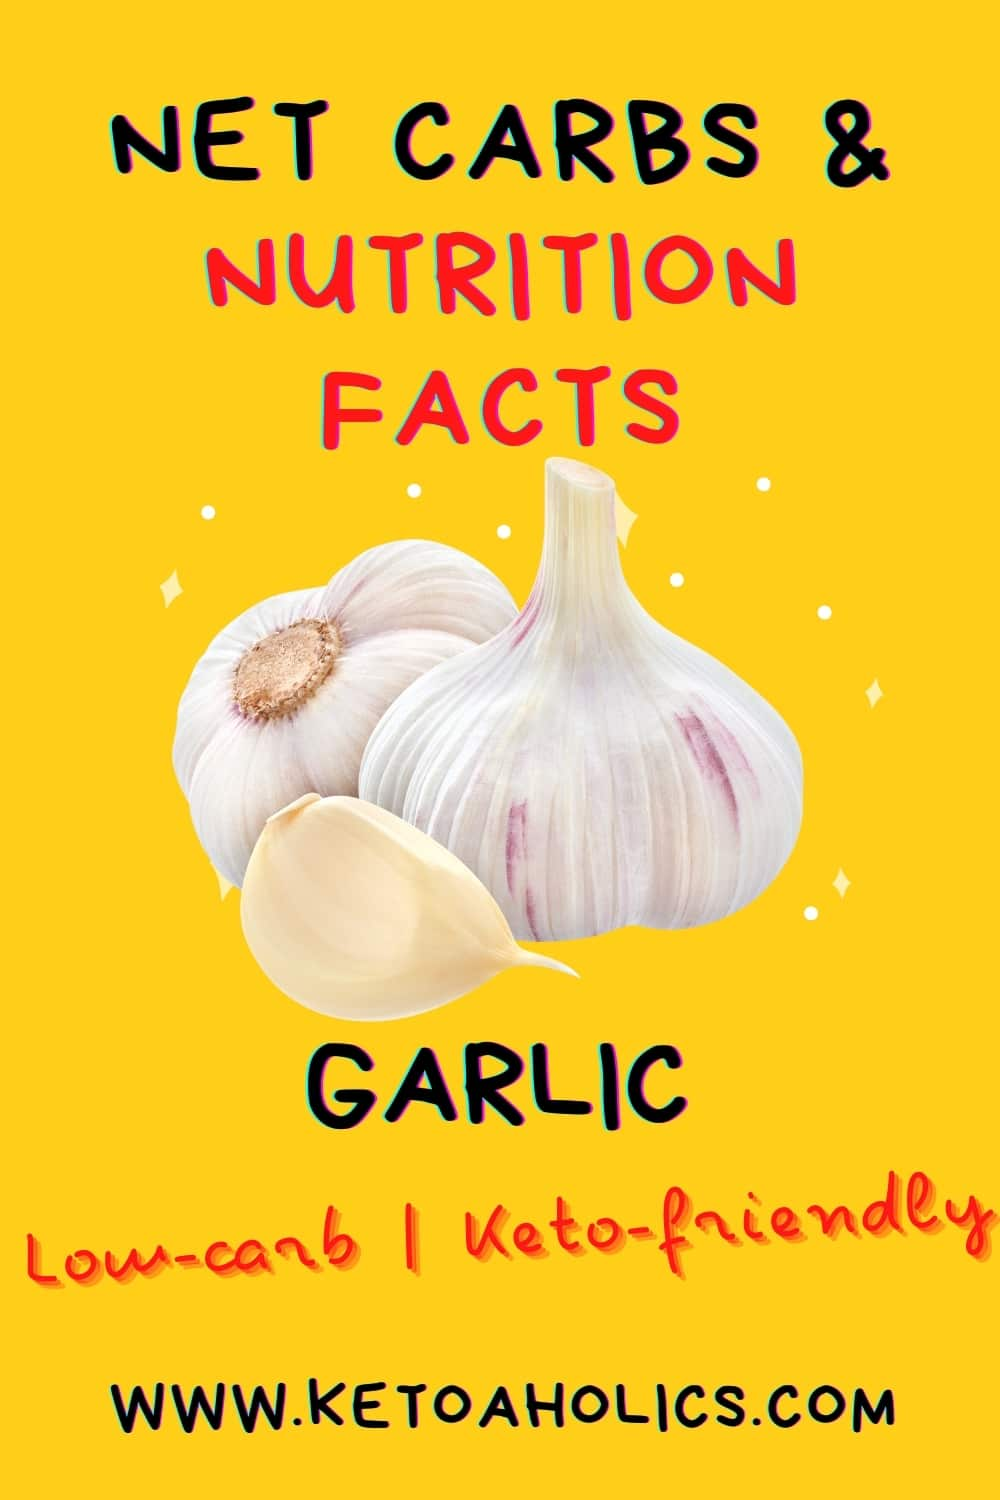 image of is garlic keto friendly or low carb